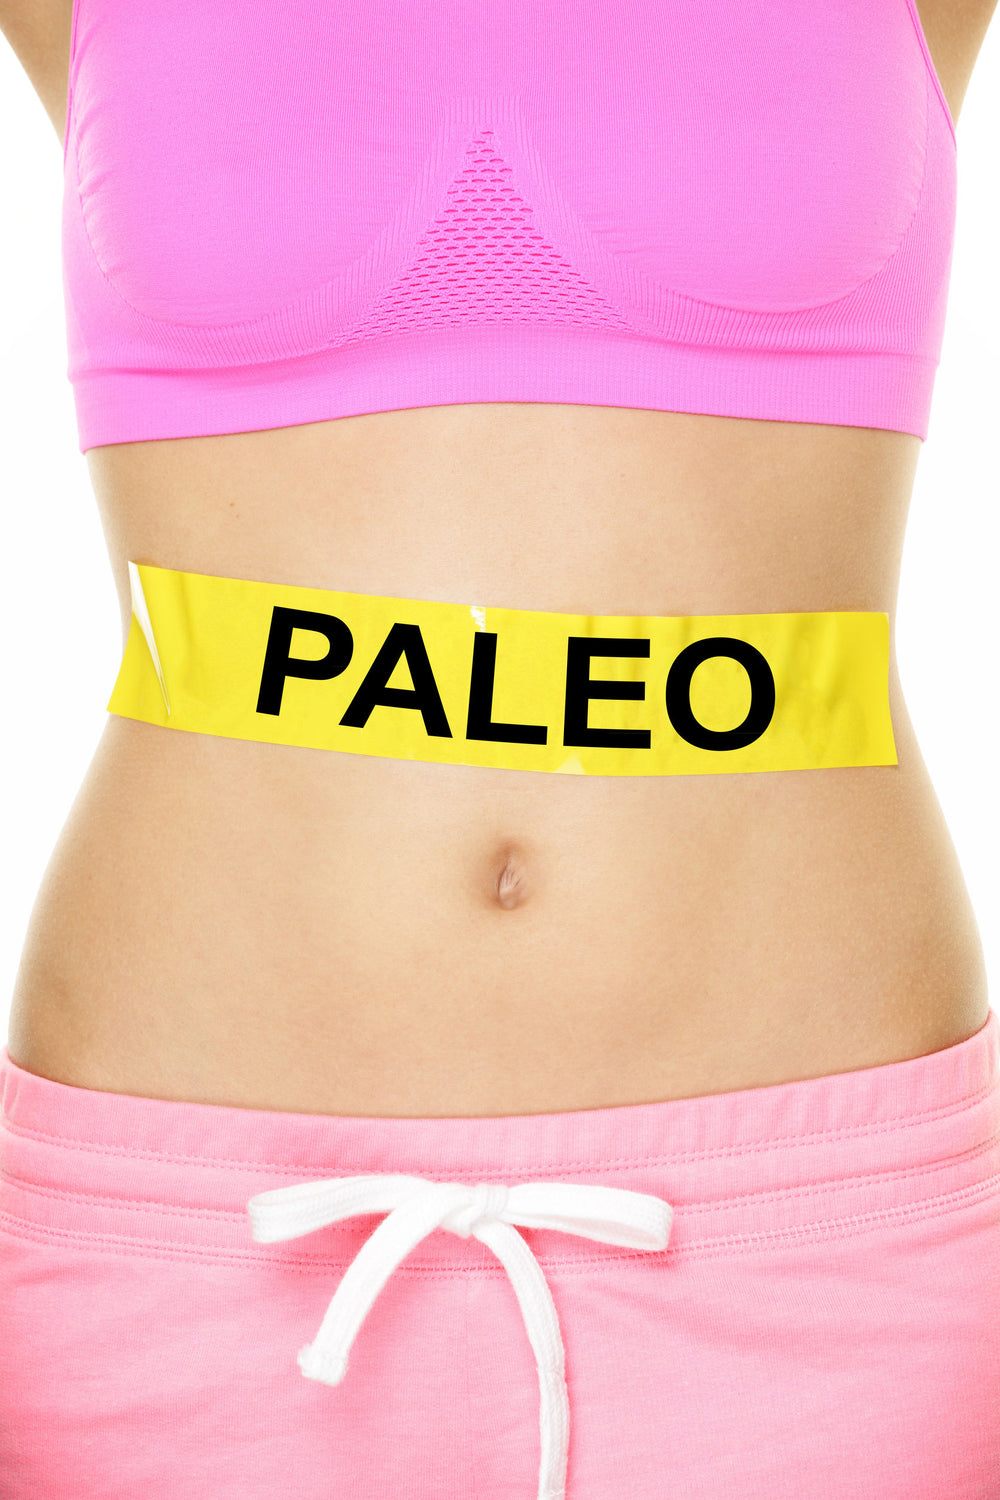 Positive Changes to Expect When Going Paleo